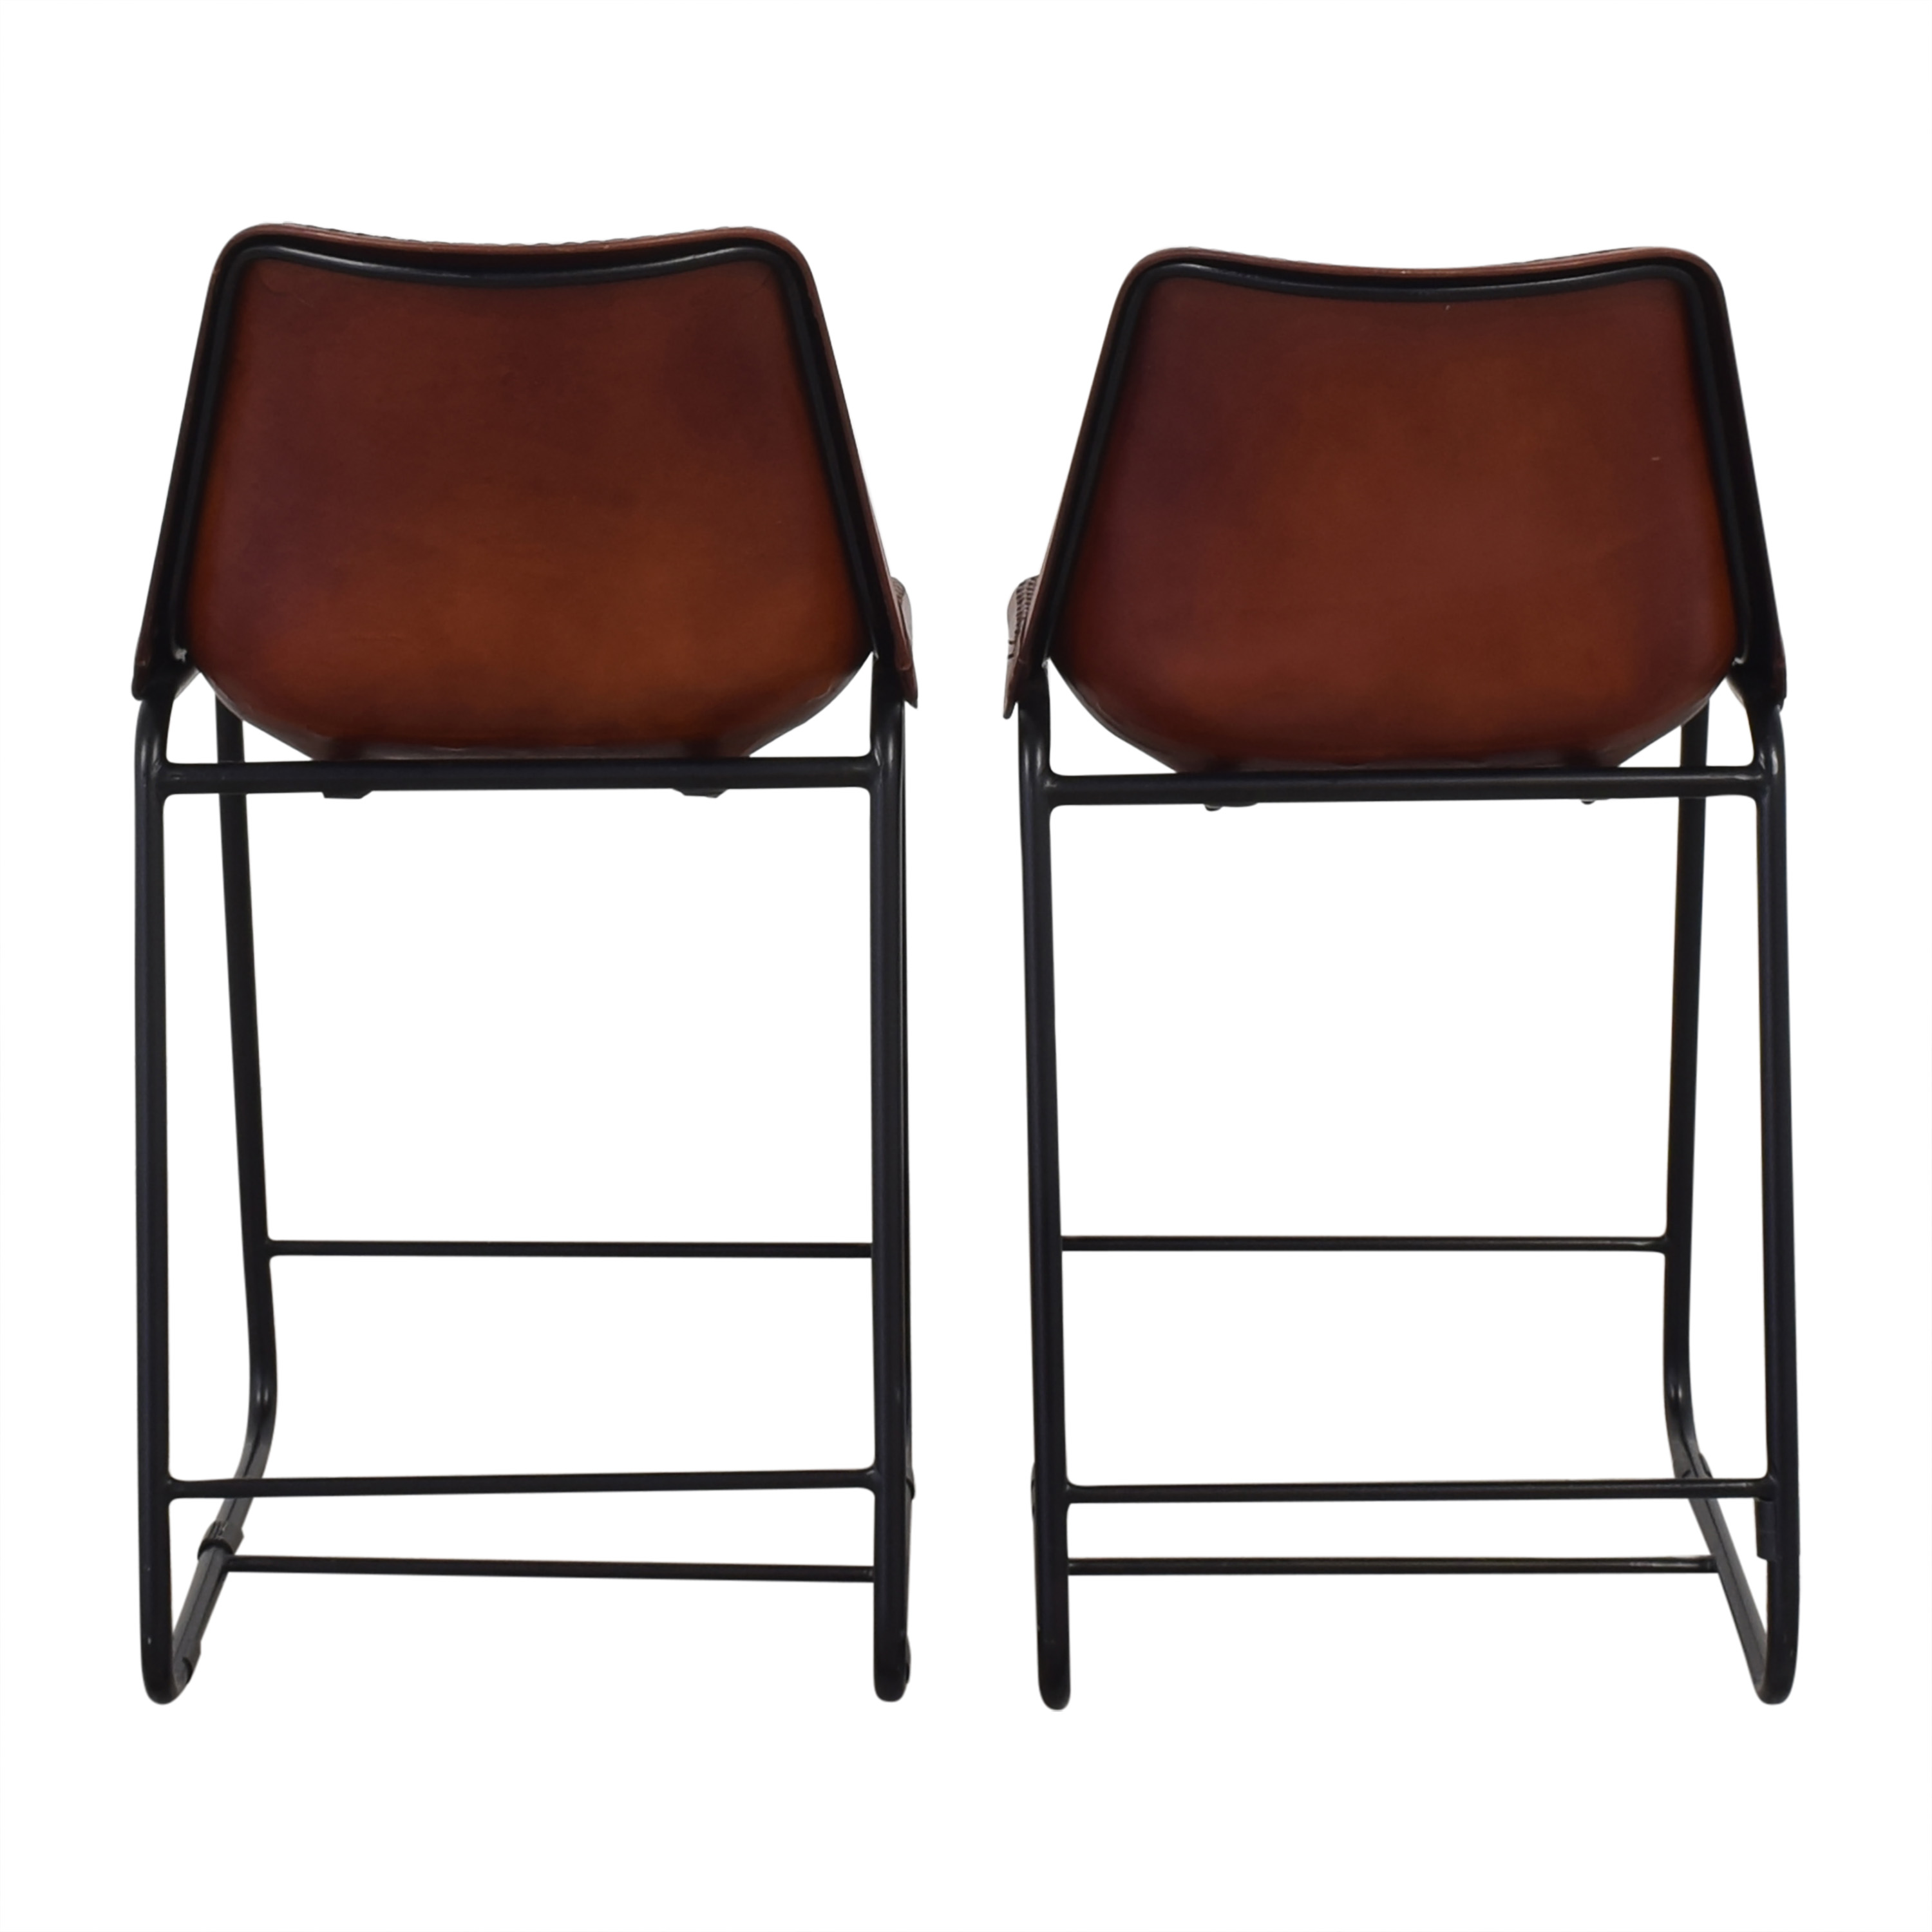 CB2 CB2 Roadhouse Counter Stools discount